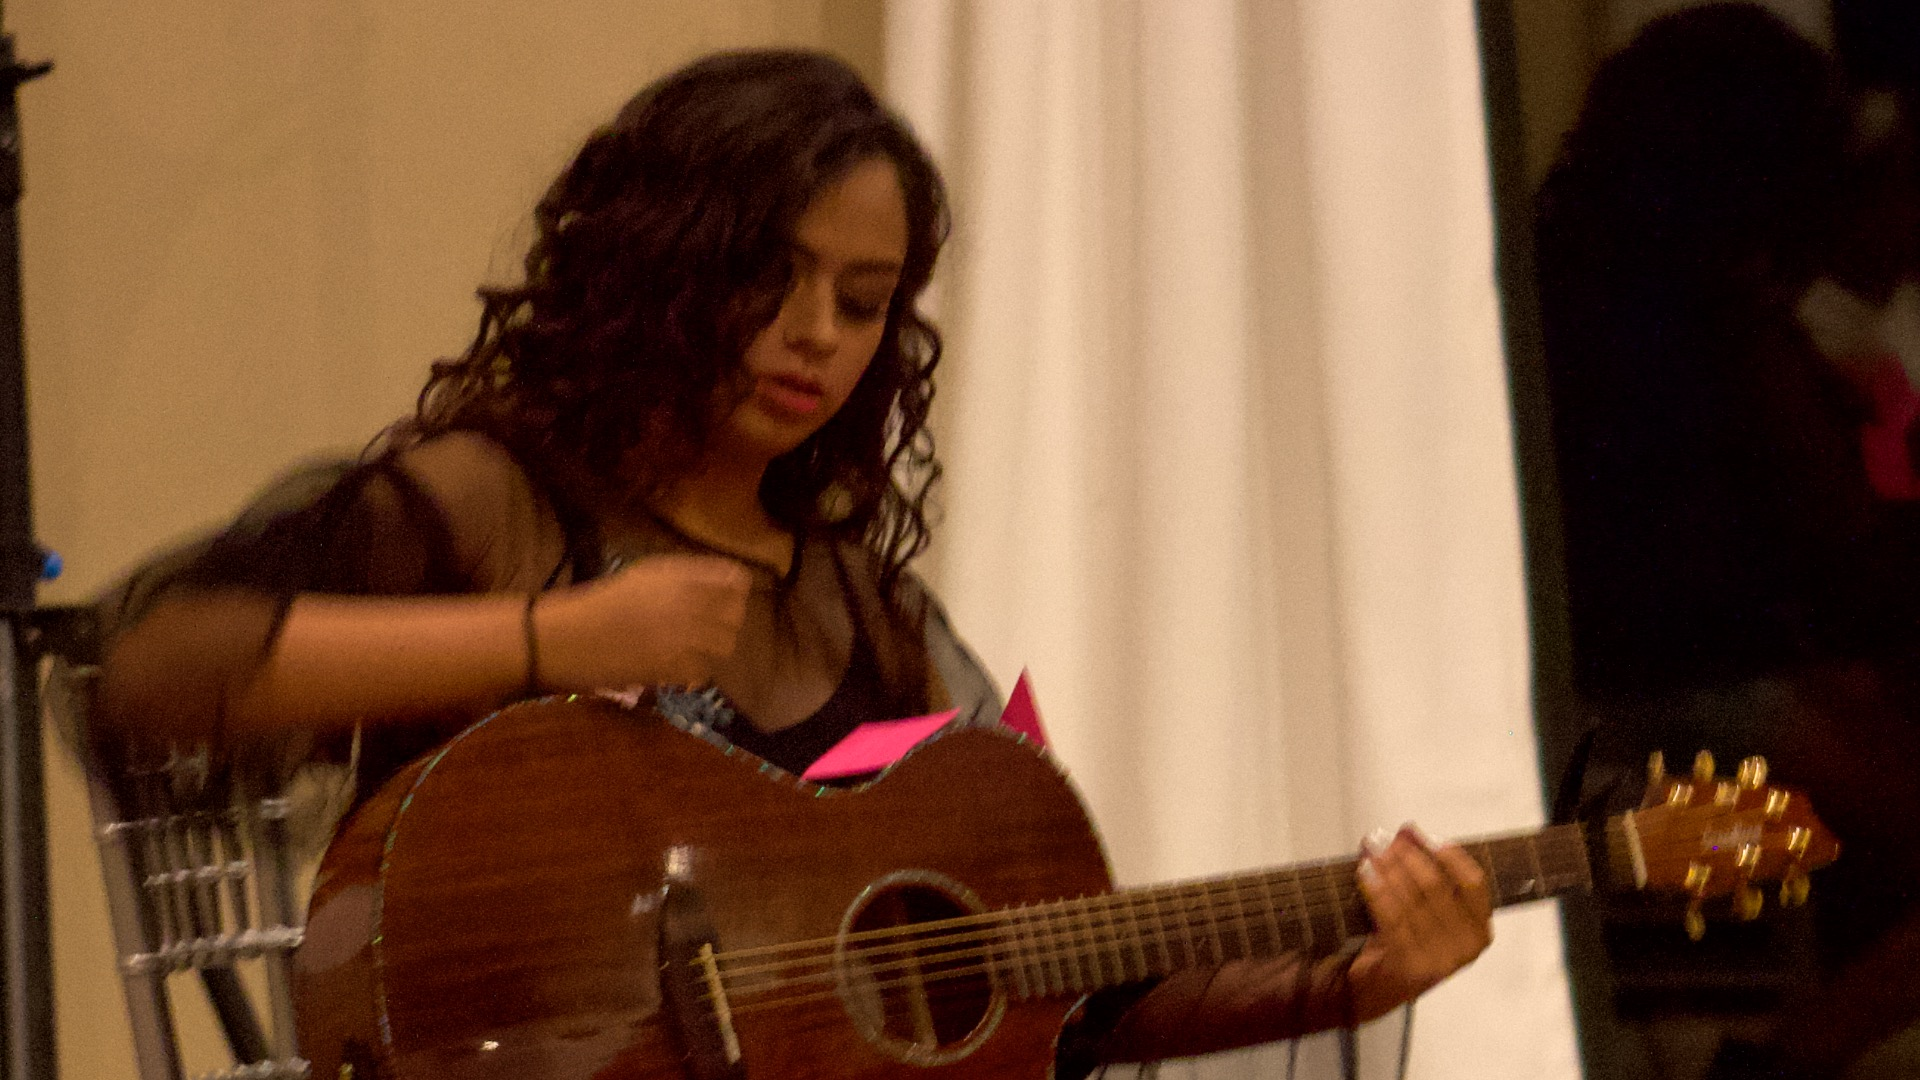 Michelle Fierro performs Sep 14 at Youth for Freedom Fashion Show